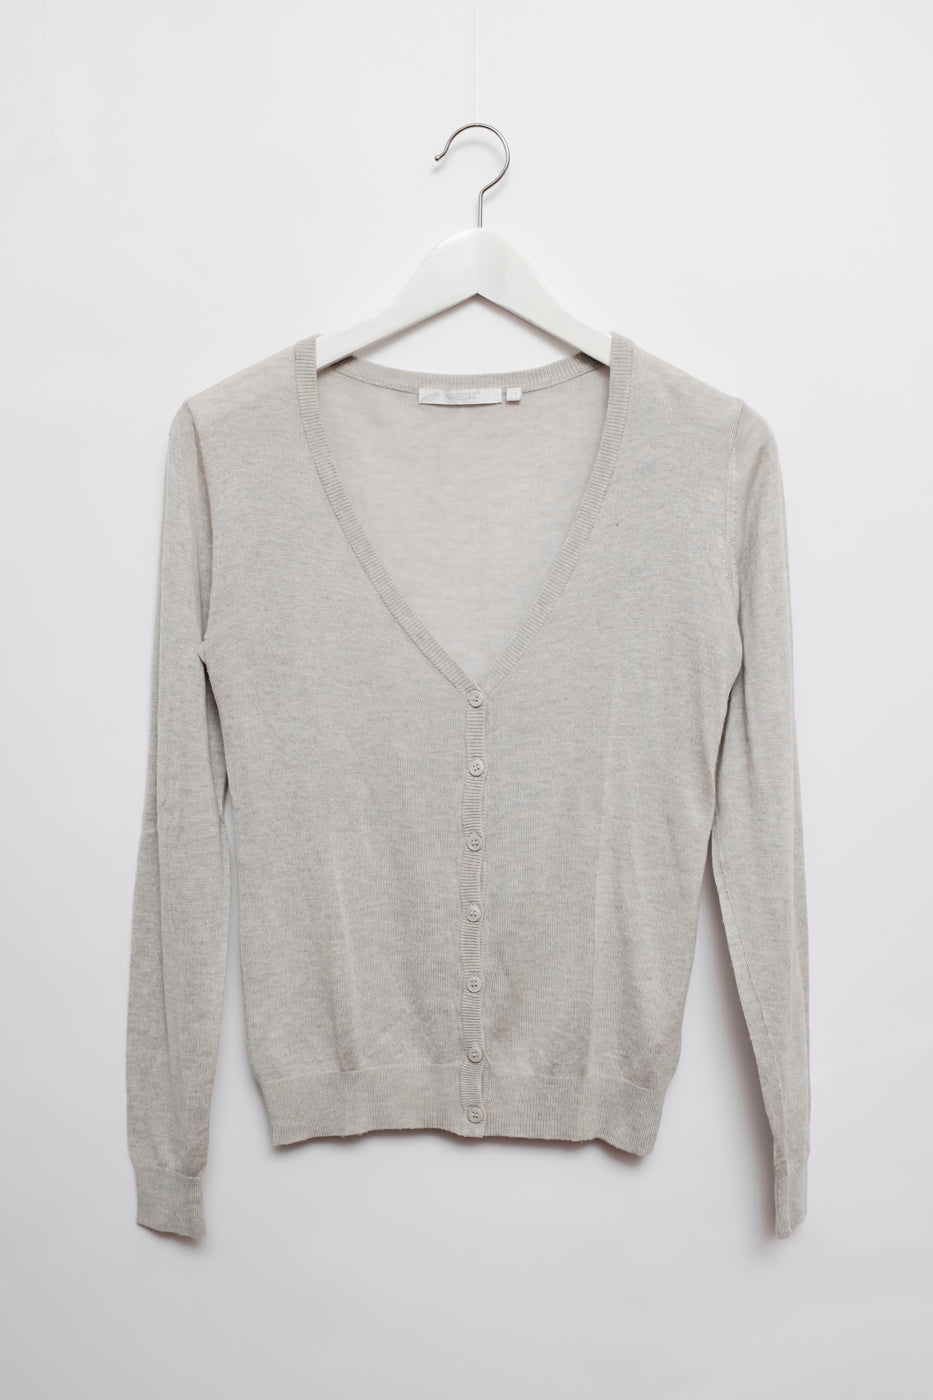 0012_SILK GREY LIGHT KNIT